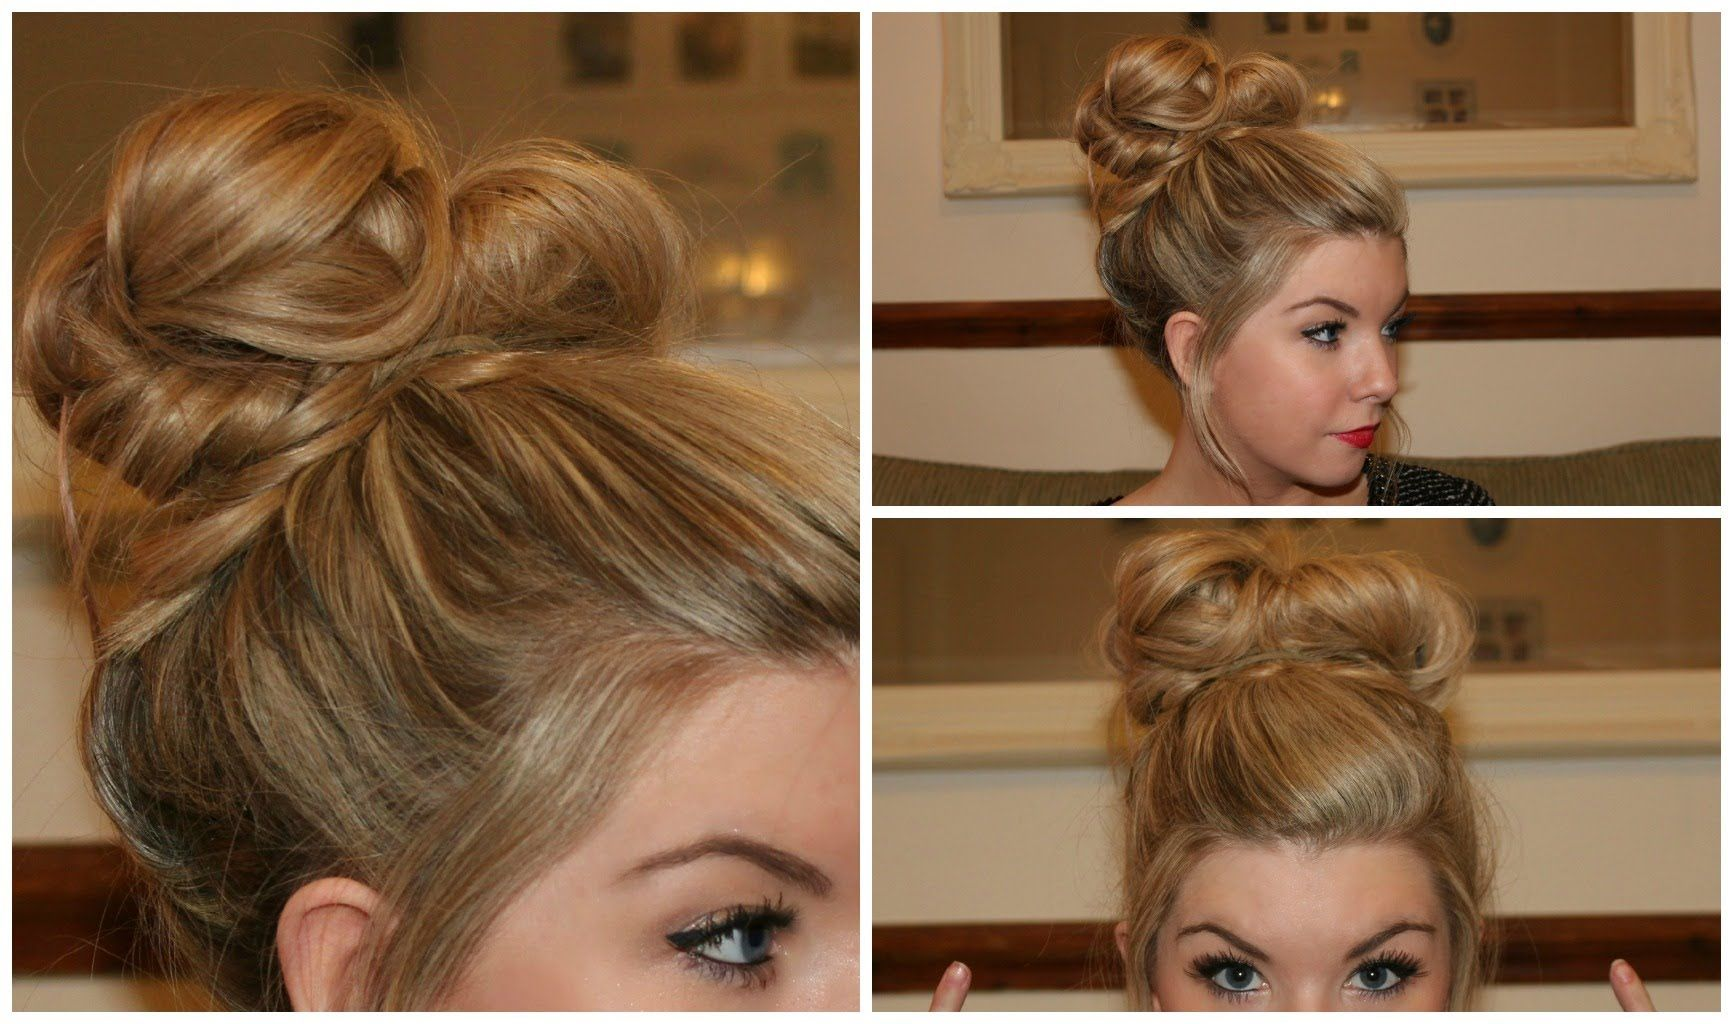 How To Simple Messy Bun Tutorial I Finally Got A Cute